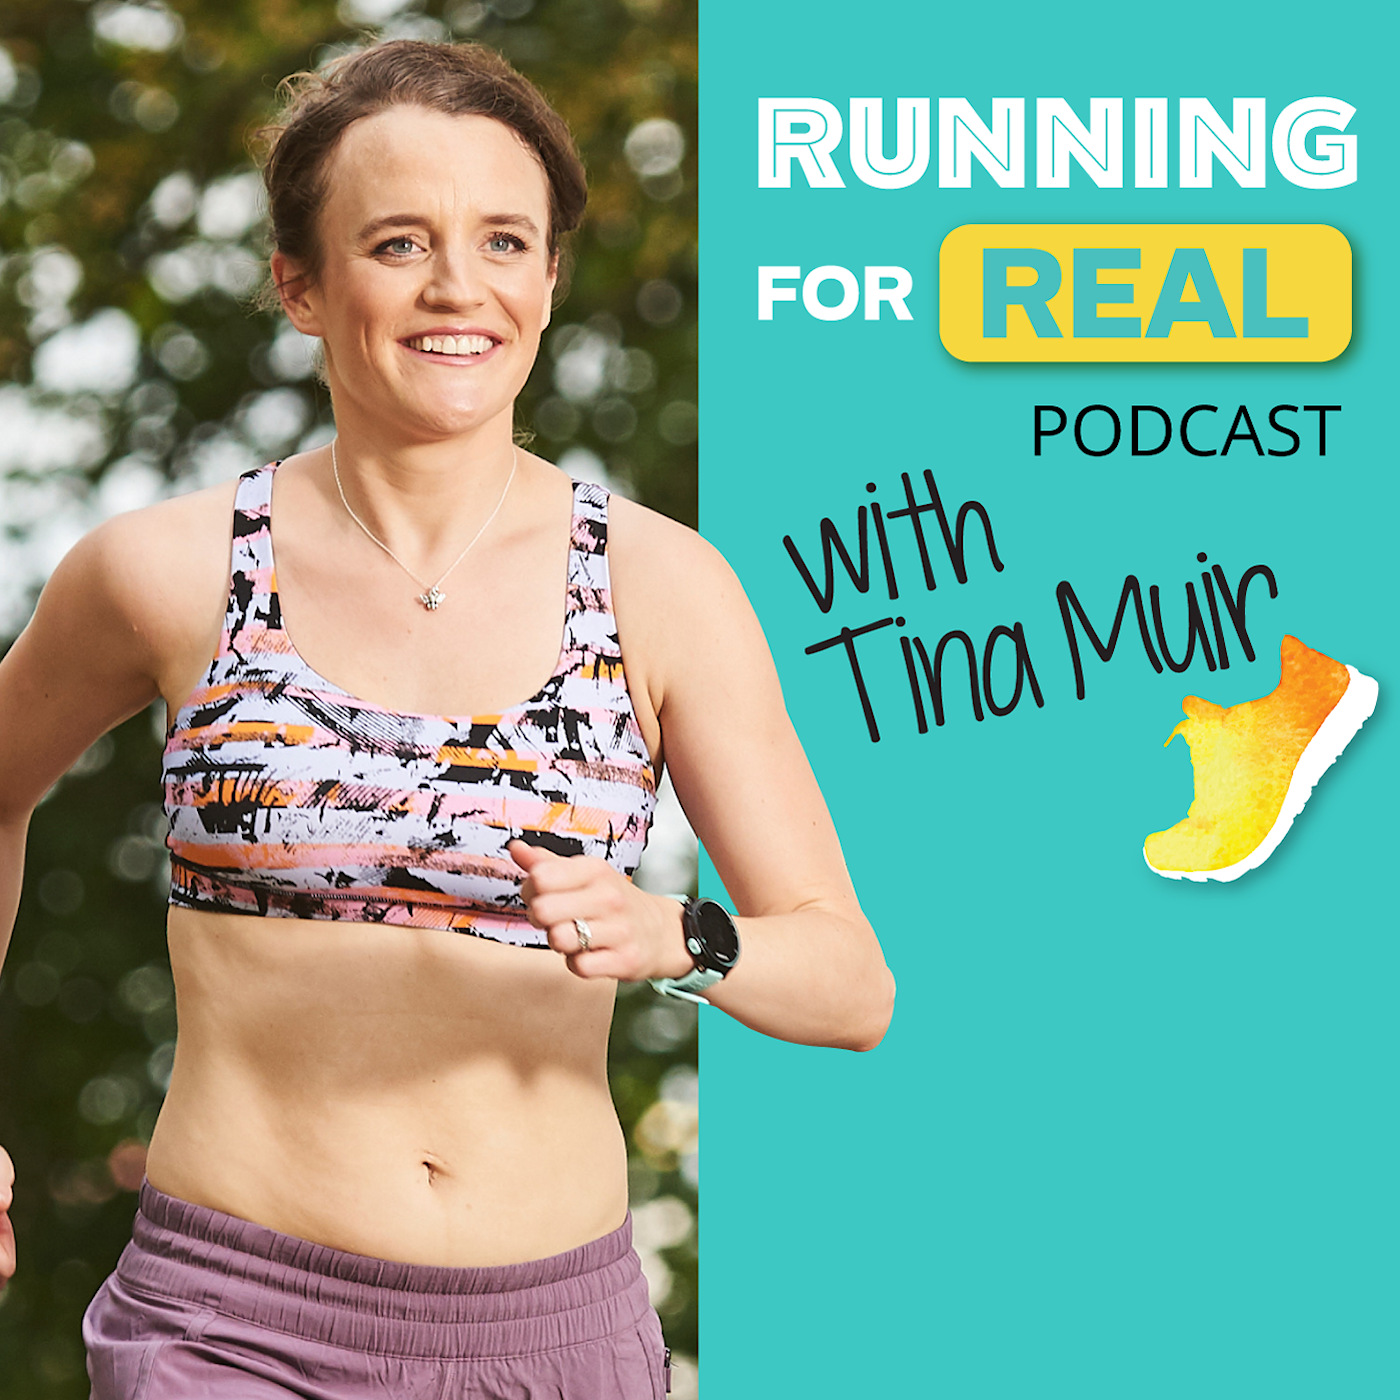 Ross Bernstein: There Are No Rules In Running -R4R 120